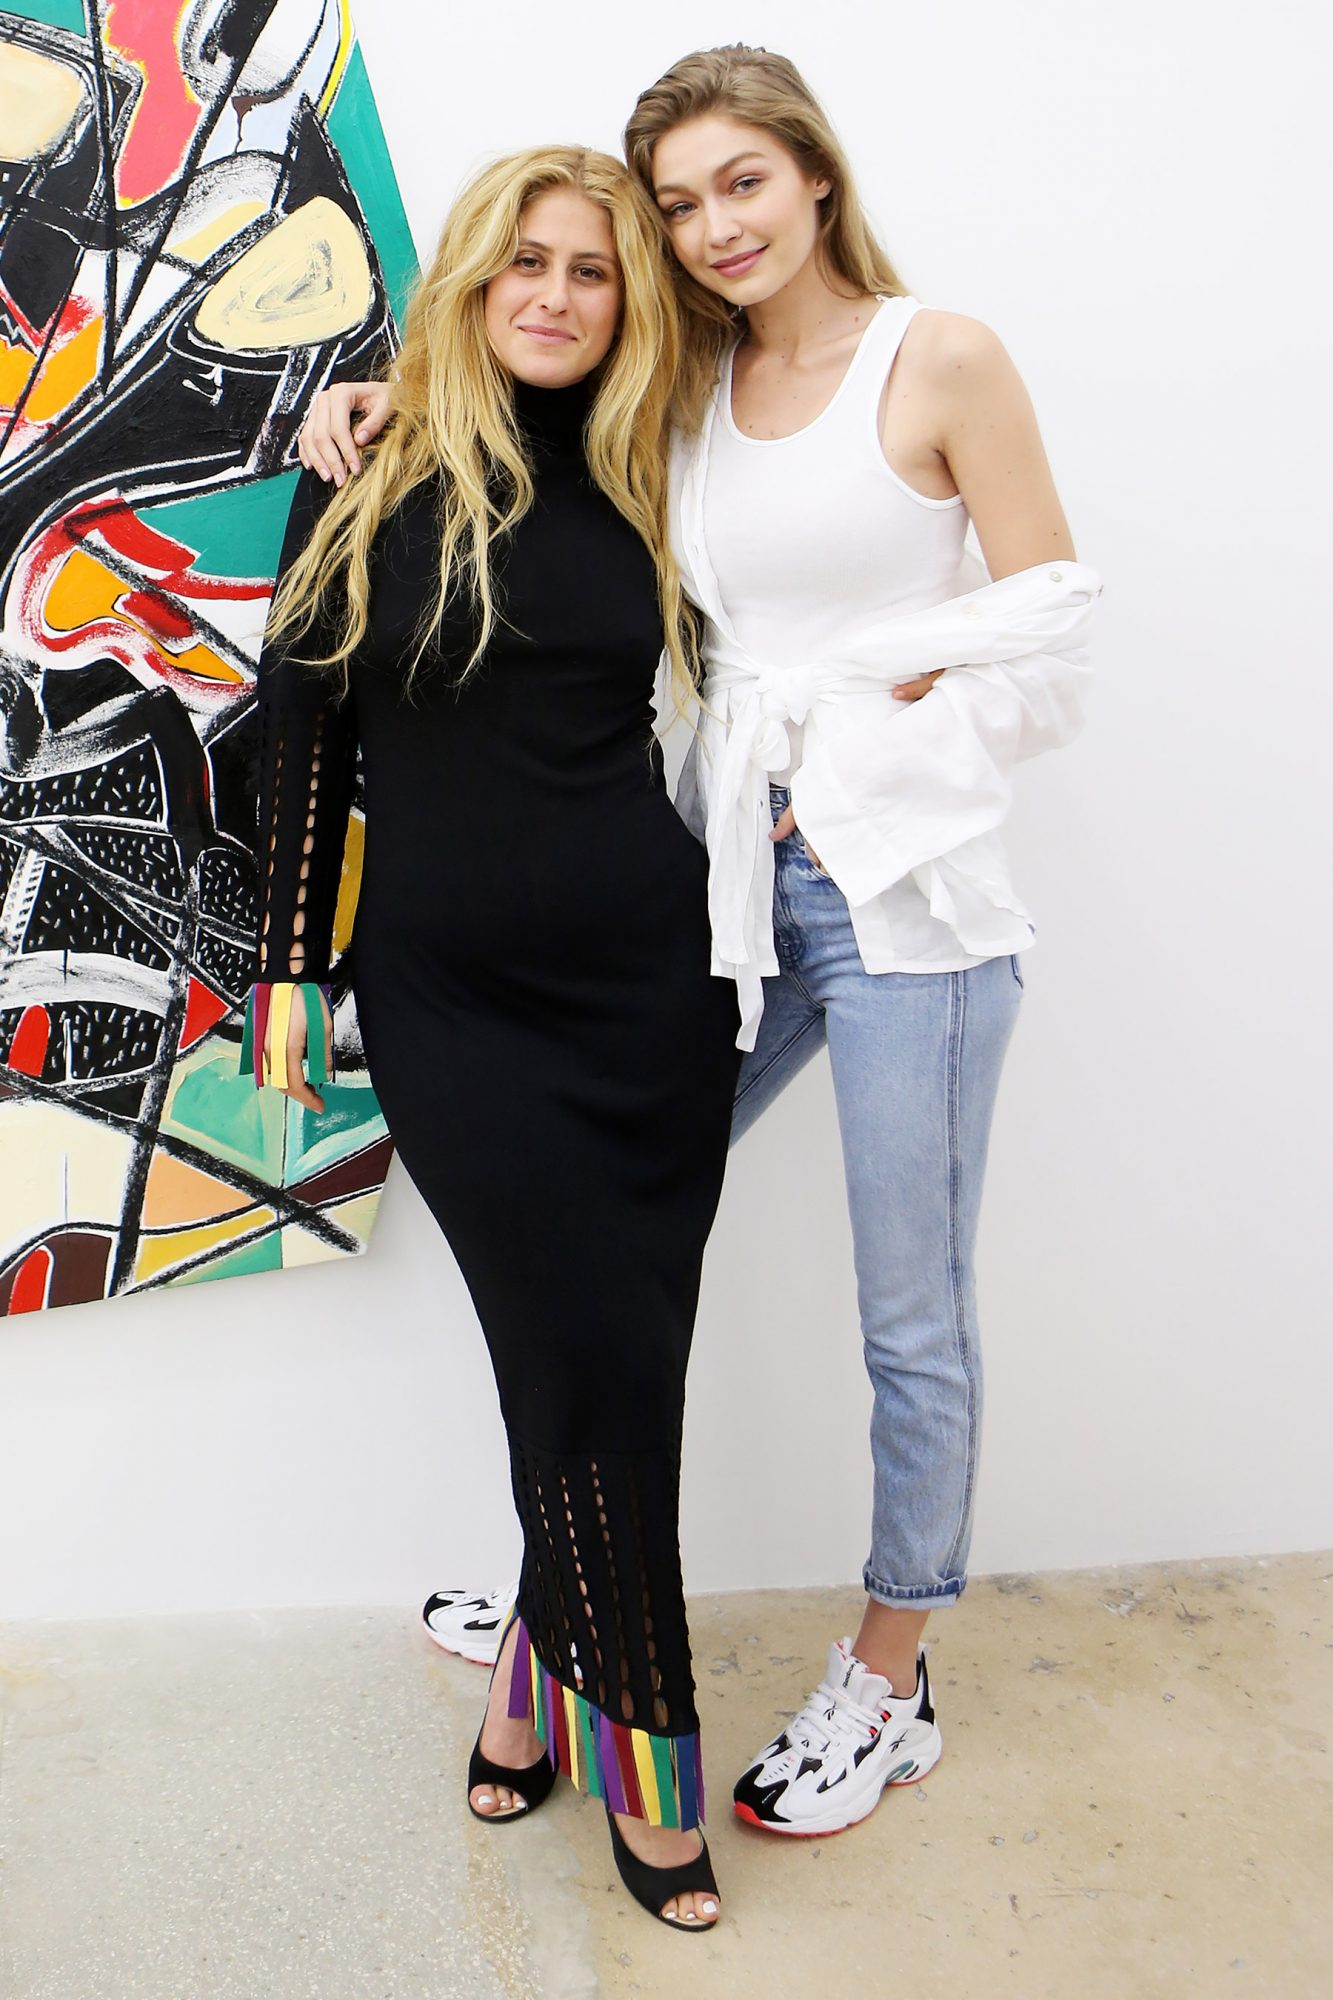 Supermodel Gigi Hadid and her brother Anwar attend an art gallery opening in Miami